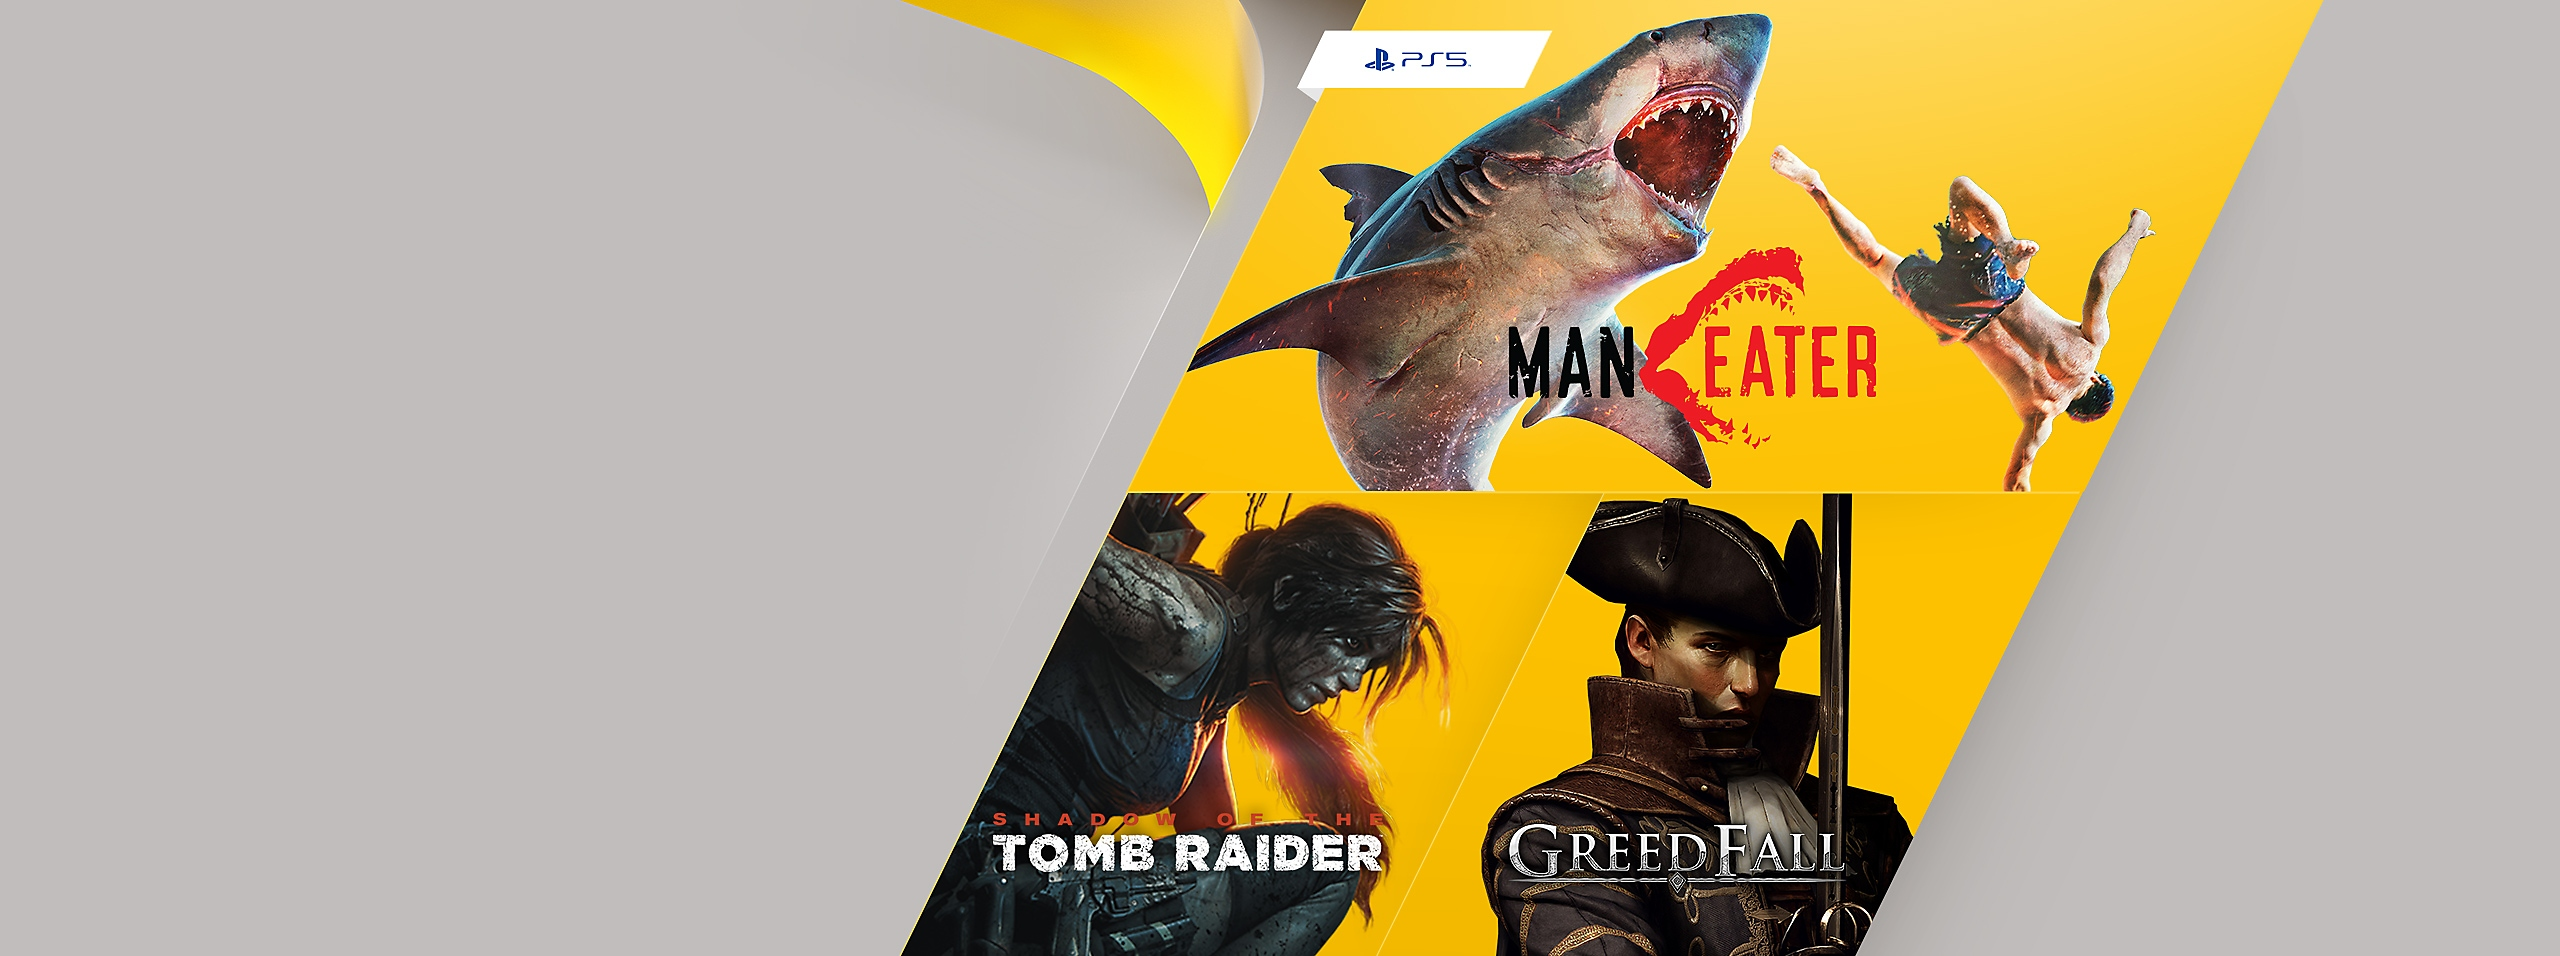 PlayStation Plus - Enhance your PlayStation experience with access to online multiplayer, monthly games, exclusive discounts and more.